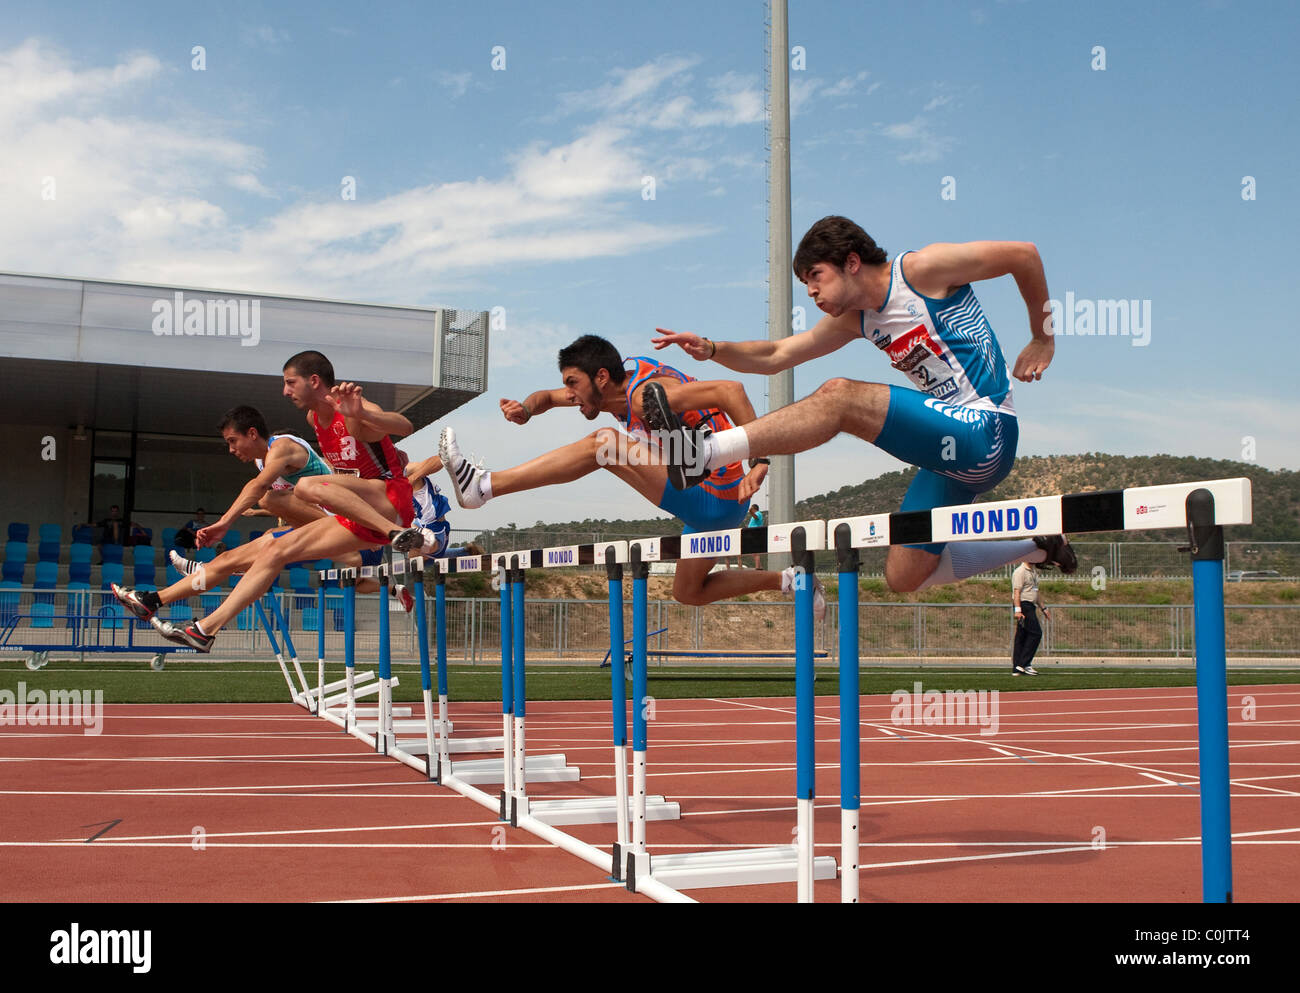 Sport outdoor Athletics competition race track adult athletes jumping. Championships of Spain, July 3rd 4th 2010 - Stock Image